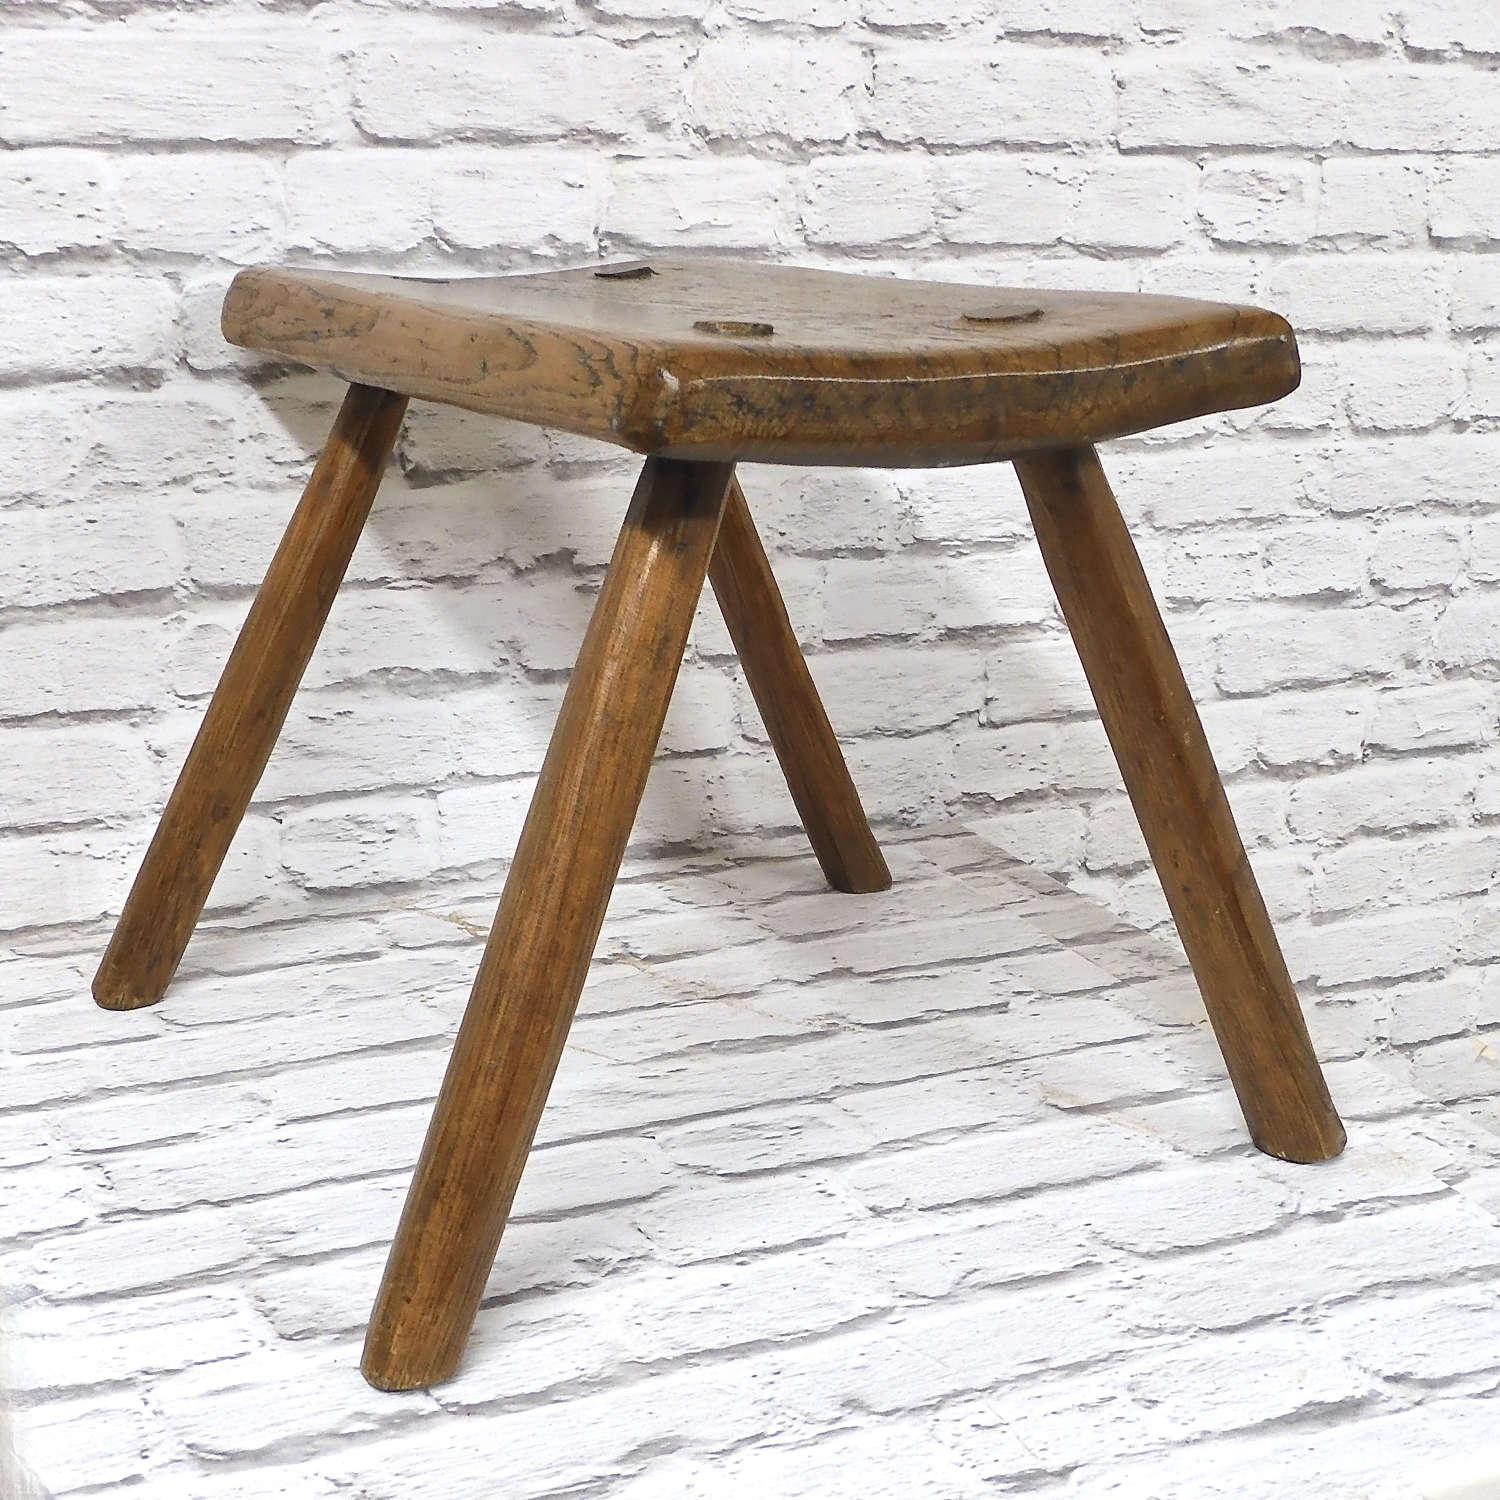 Elm Top C19th Country Stool